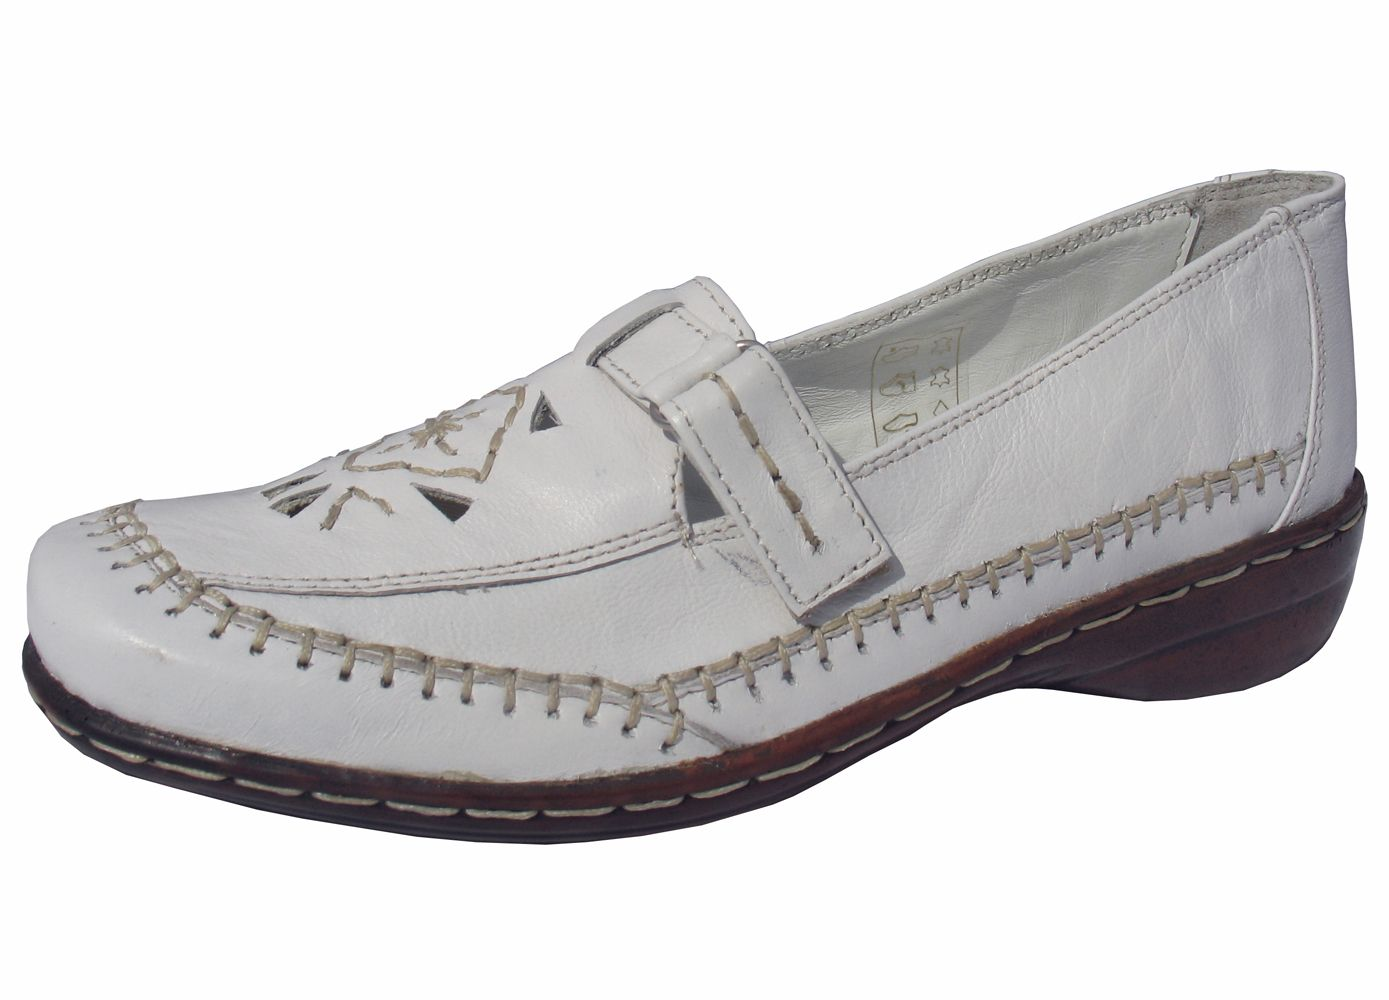 Foldable Flats White Black Ruched Round Toe Ami Clubwear Ballet Flat Faux Leather. Featuring, a faux leather texture, round toe, two tone, front lace up, slip on, and a cushioned foot bed. Flats are the perfect shoes to accentuate your outfit on those days that you want to be stylish but comfortable.